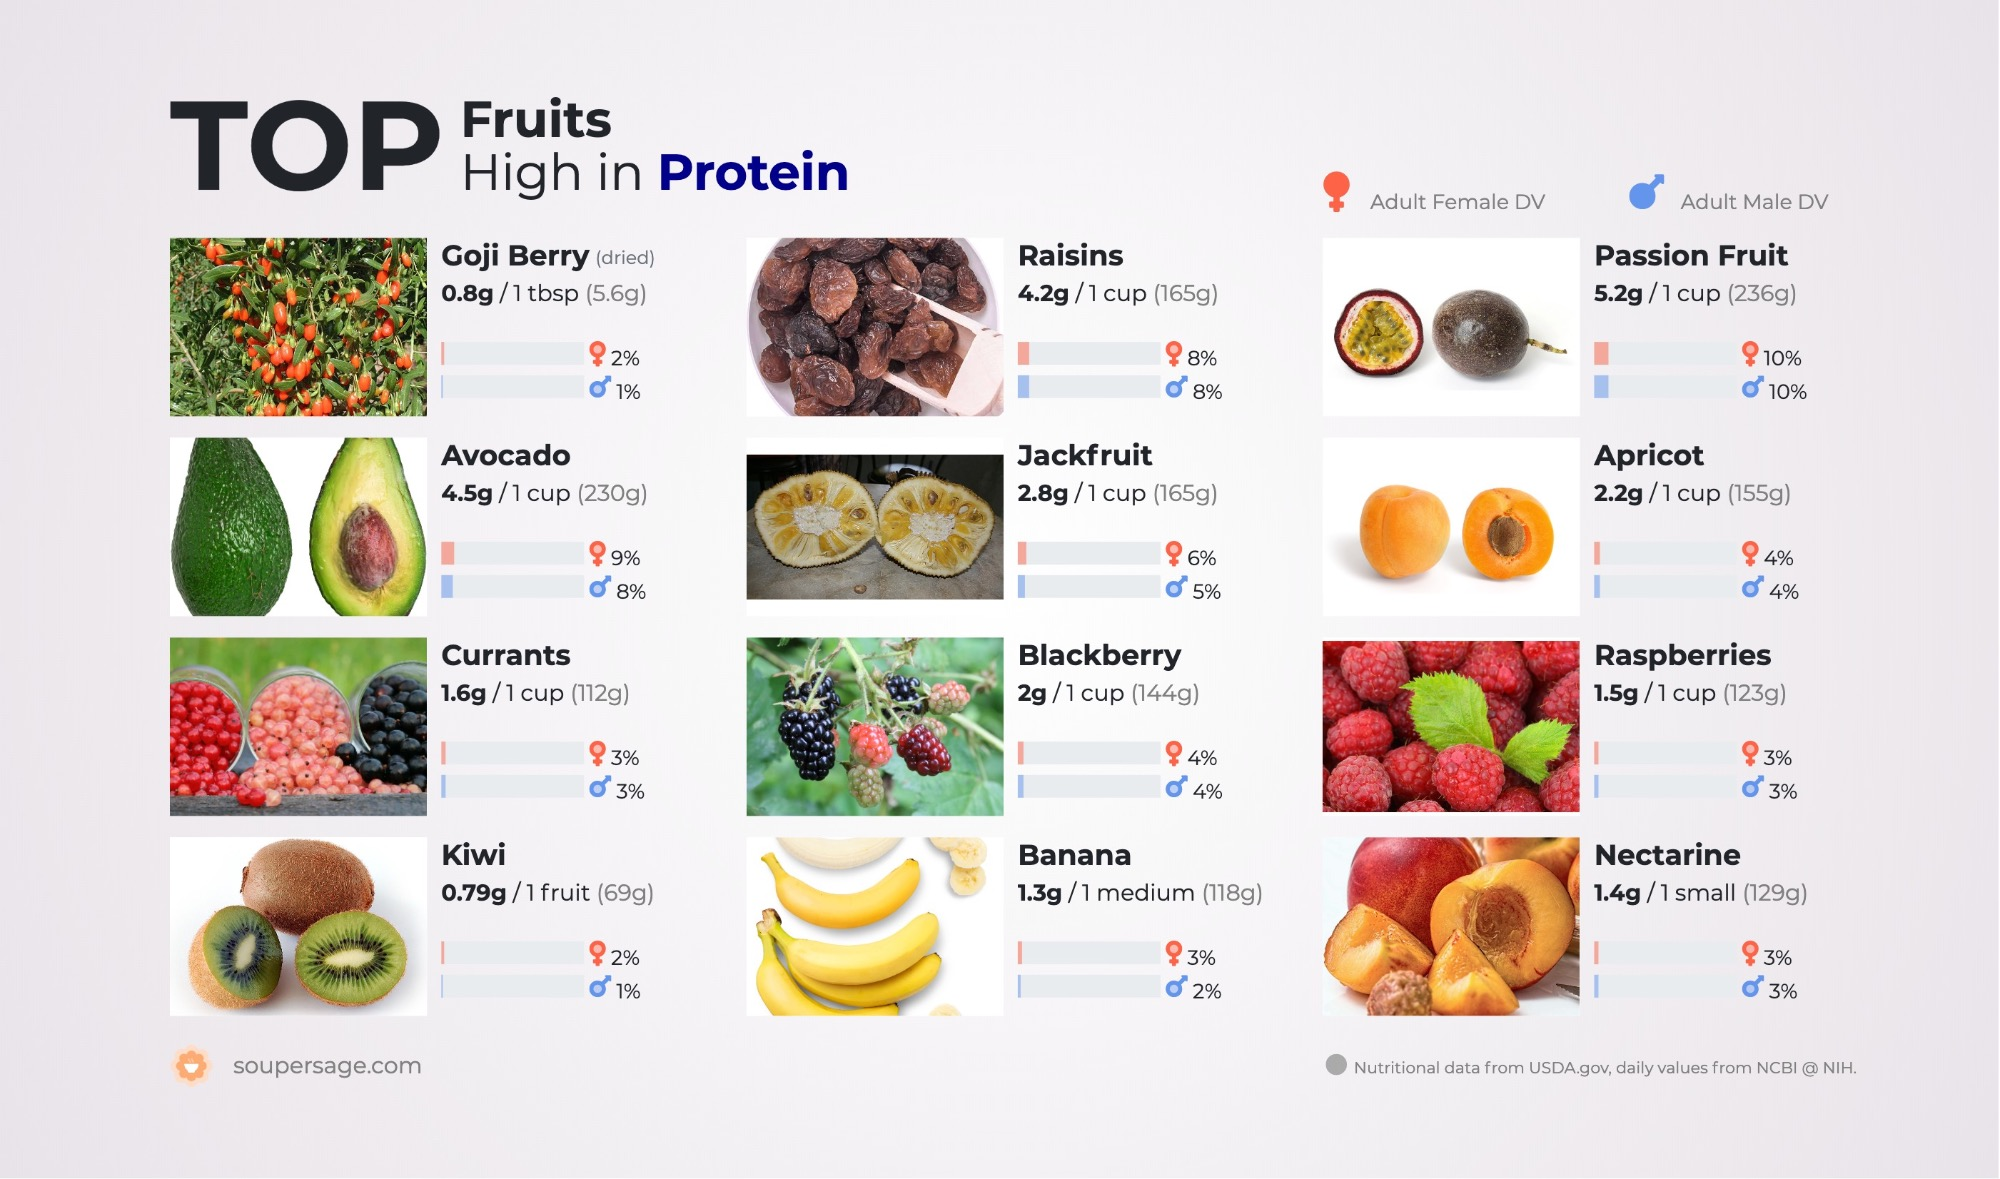 image of Top Fruits High in Protein